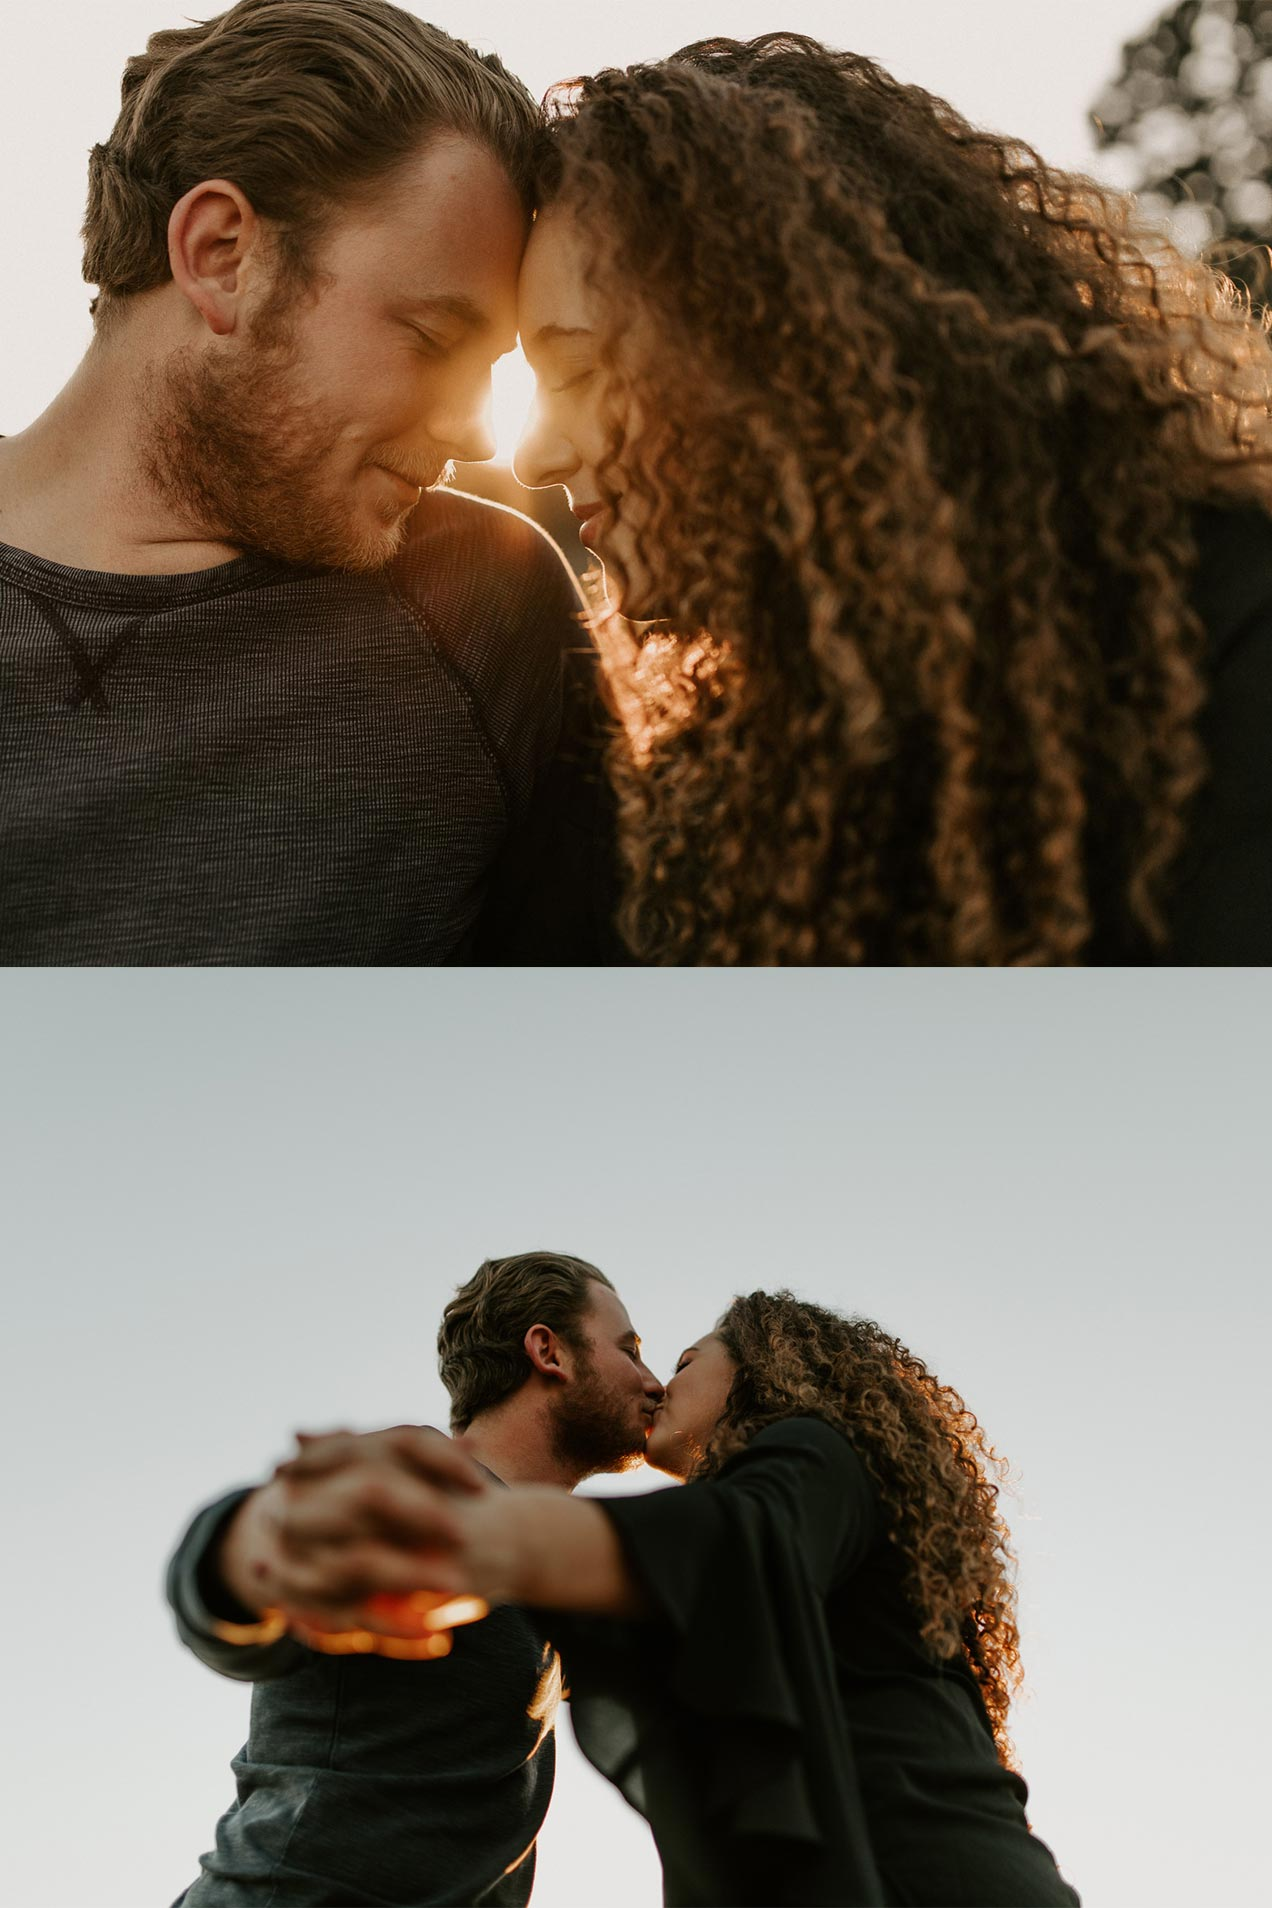 romantic and intimate engagement photos at golden hour